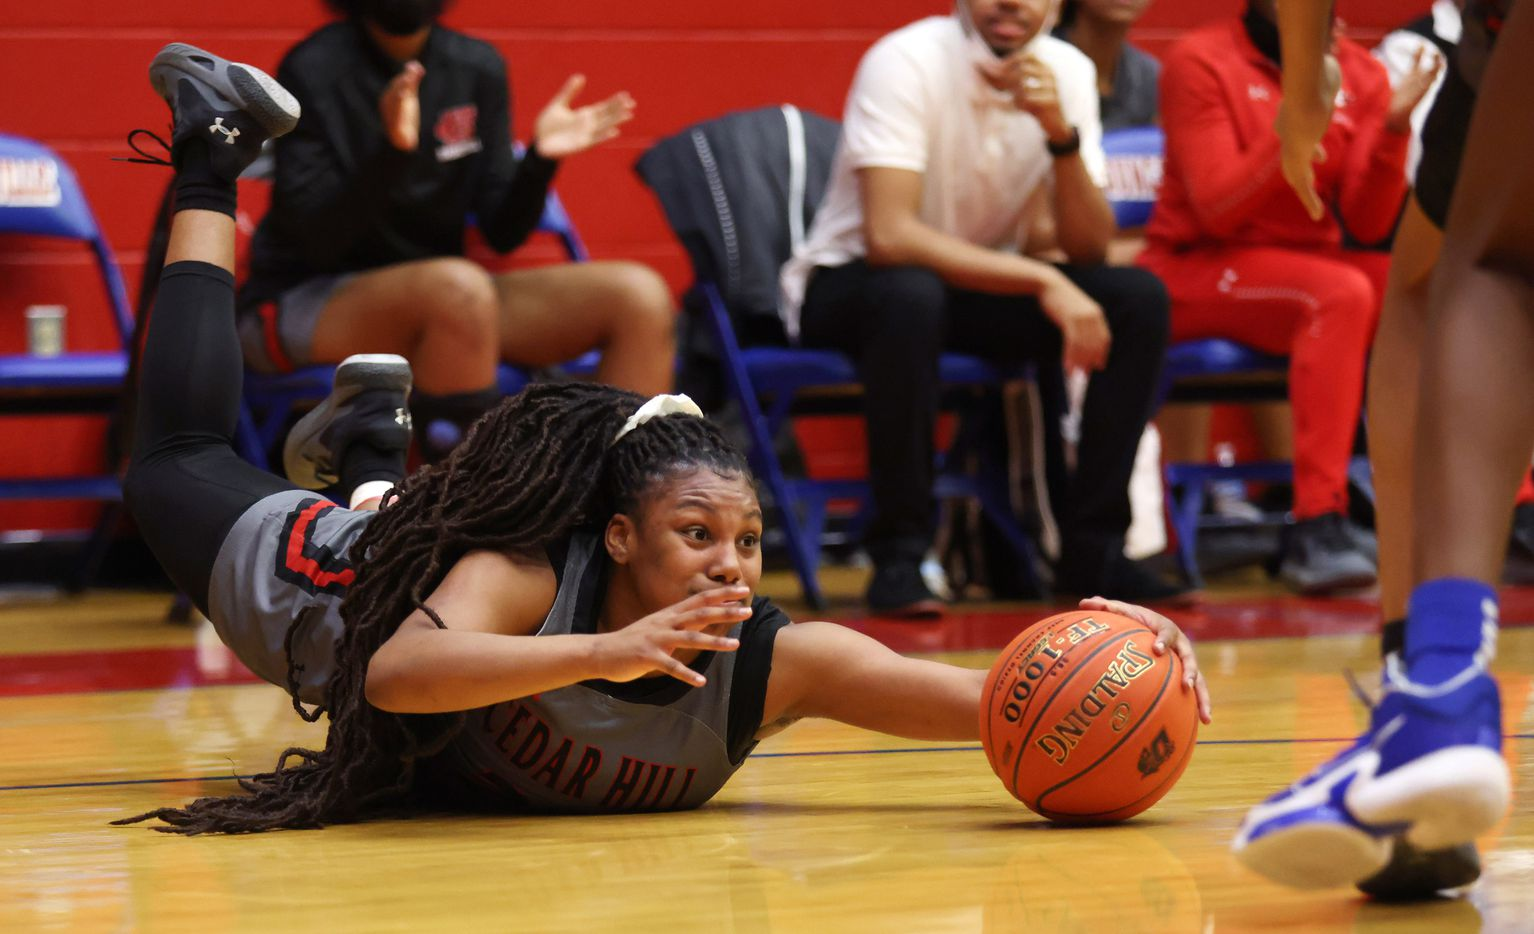 Cedar Hill's Theasia Ebron (23) dives for a loose ball in a game against Duncanville during the first half of play at Sandra Meadows Arena at Duncanville High School on Tuesday, January 12, 2021 in Dallas. (Vernon Bryant/The Dallas Morning News)